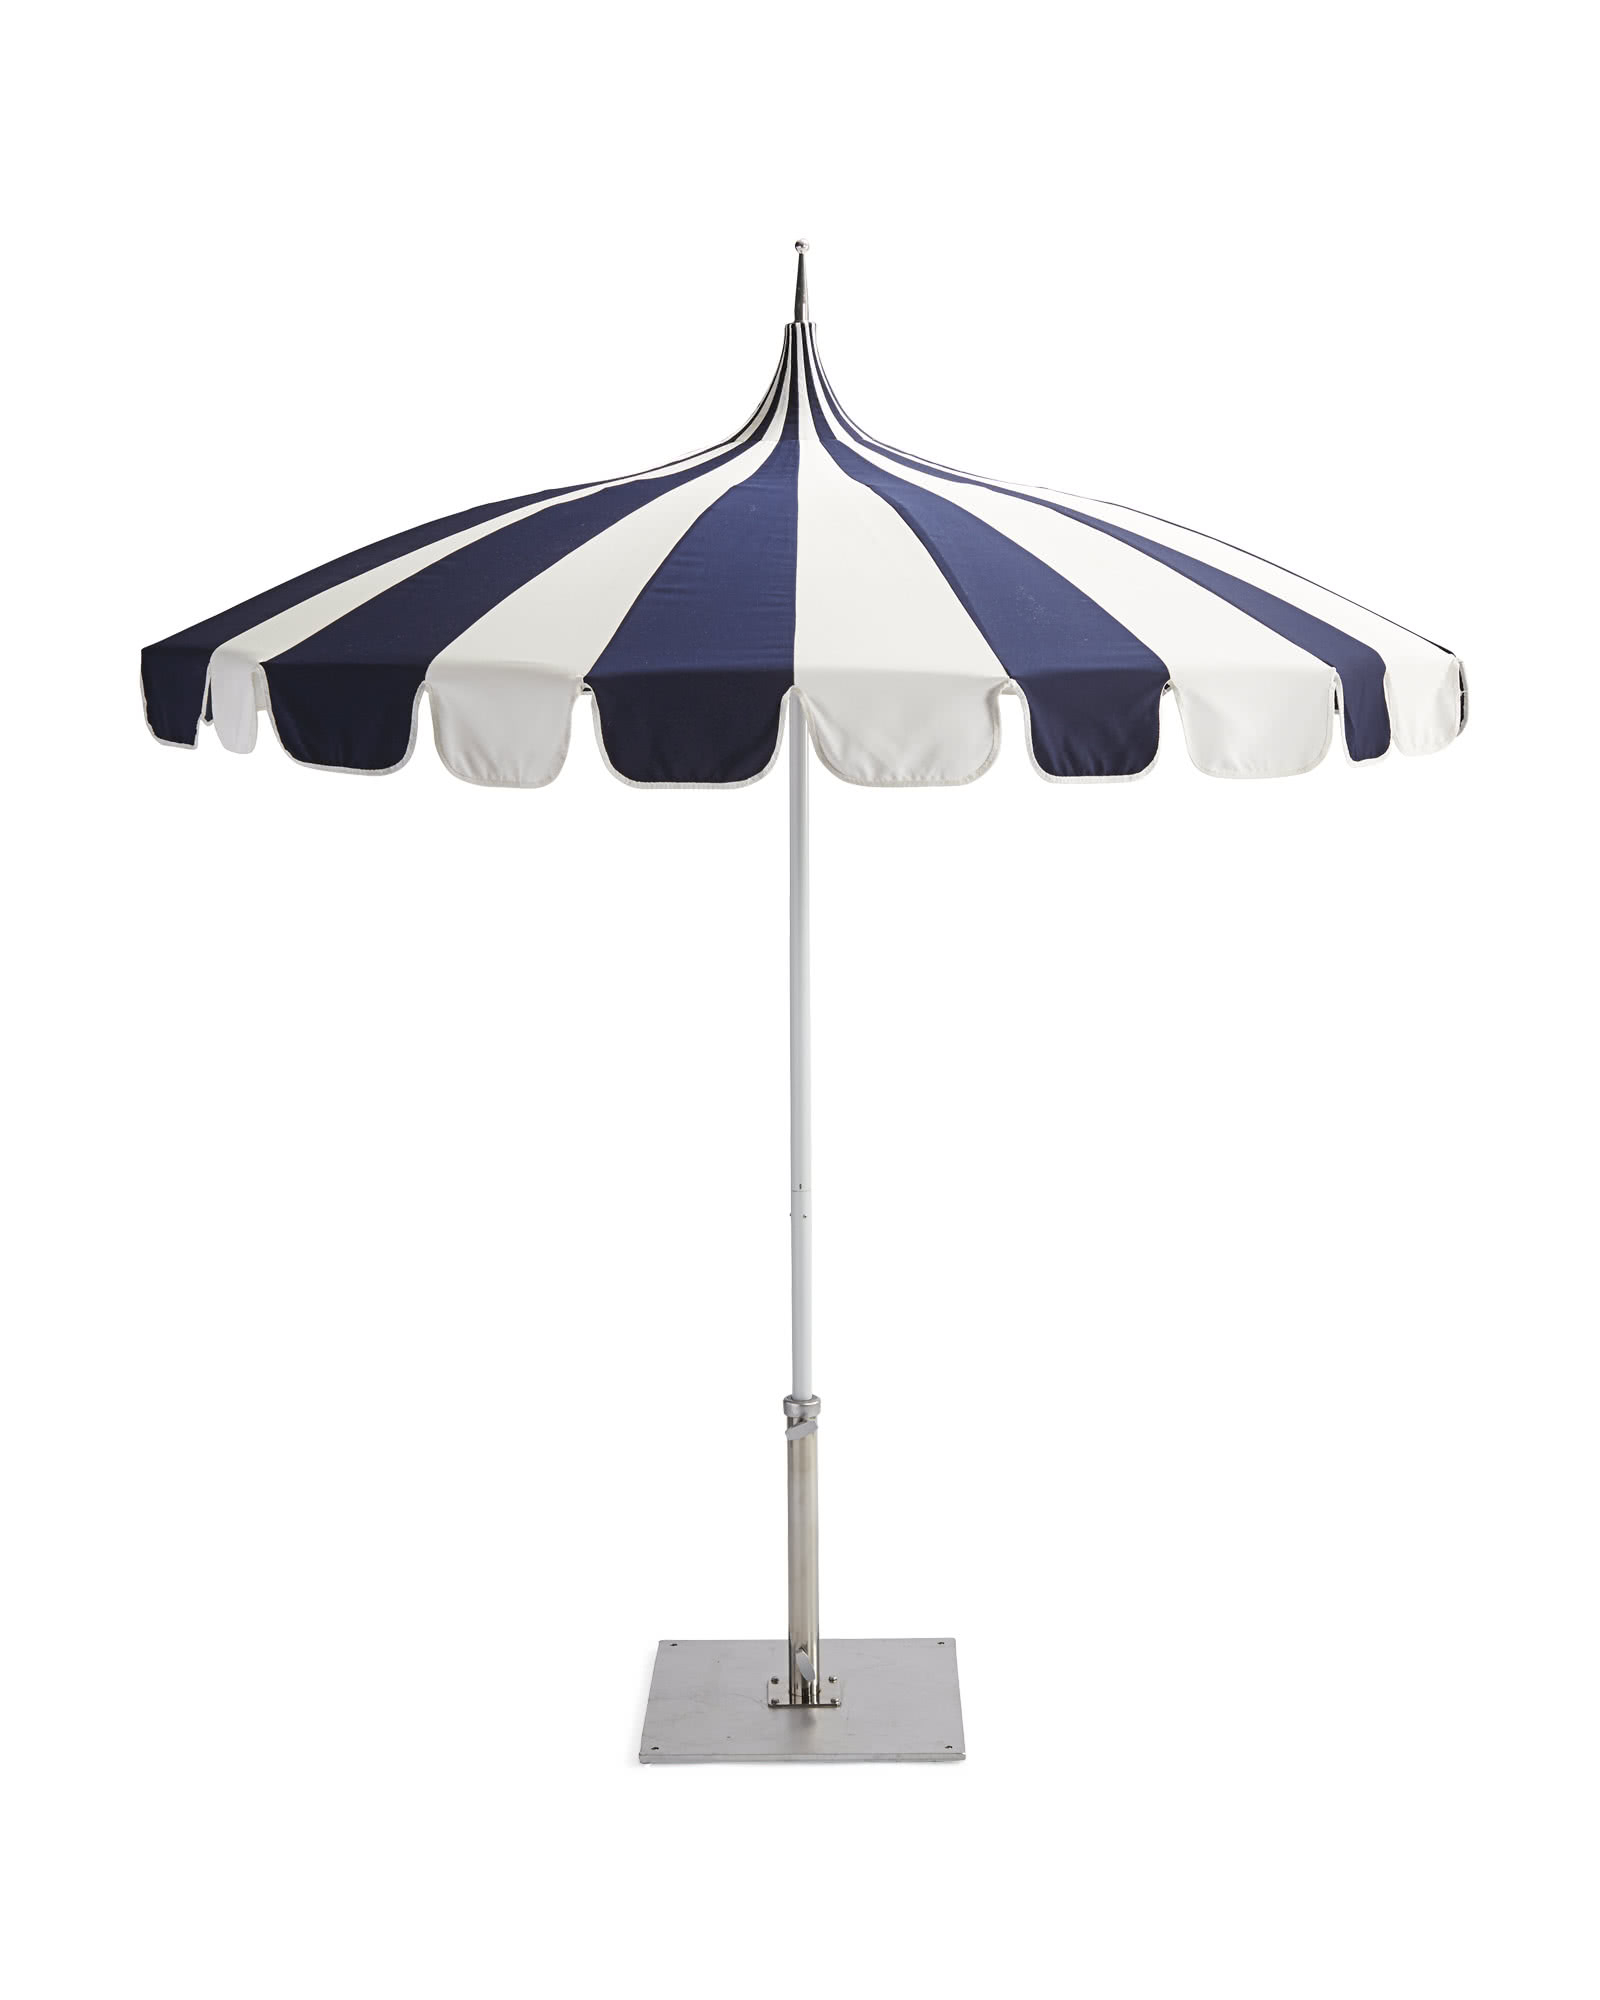 Striped Outdoor Chaises With Umbrella Inside Most Current Eastport Striped Umbrella (View 16 of 25)